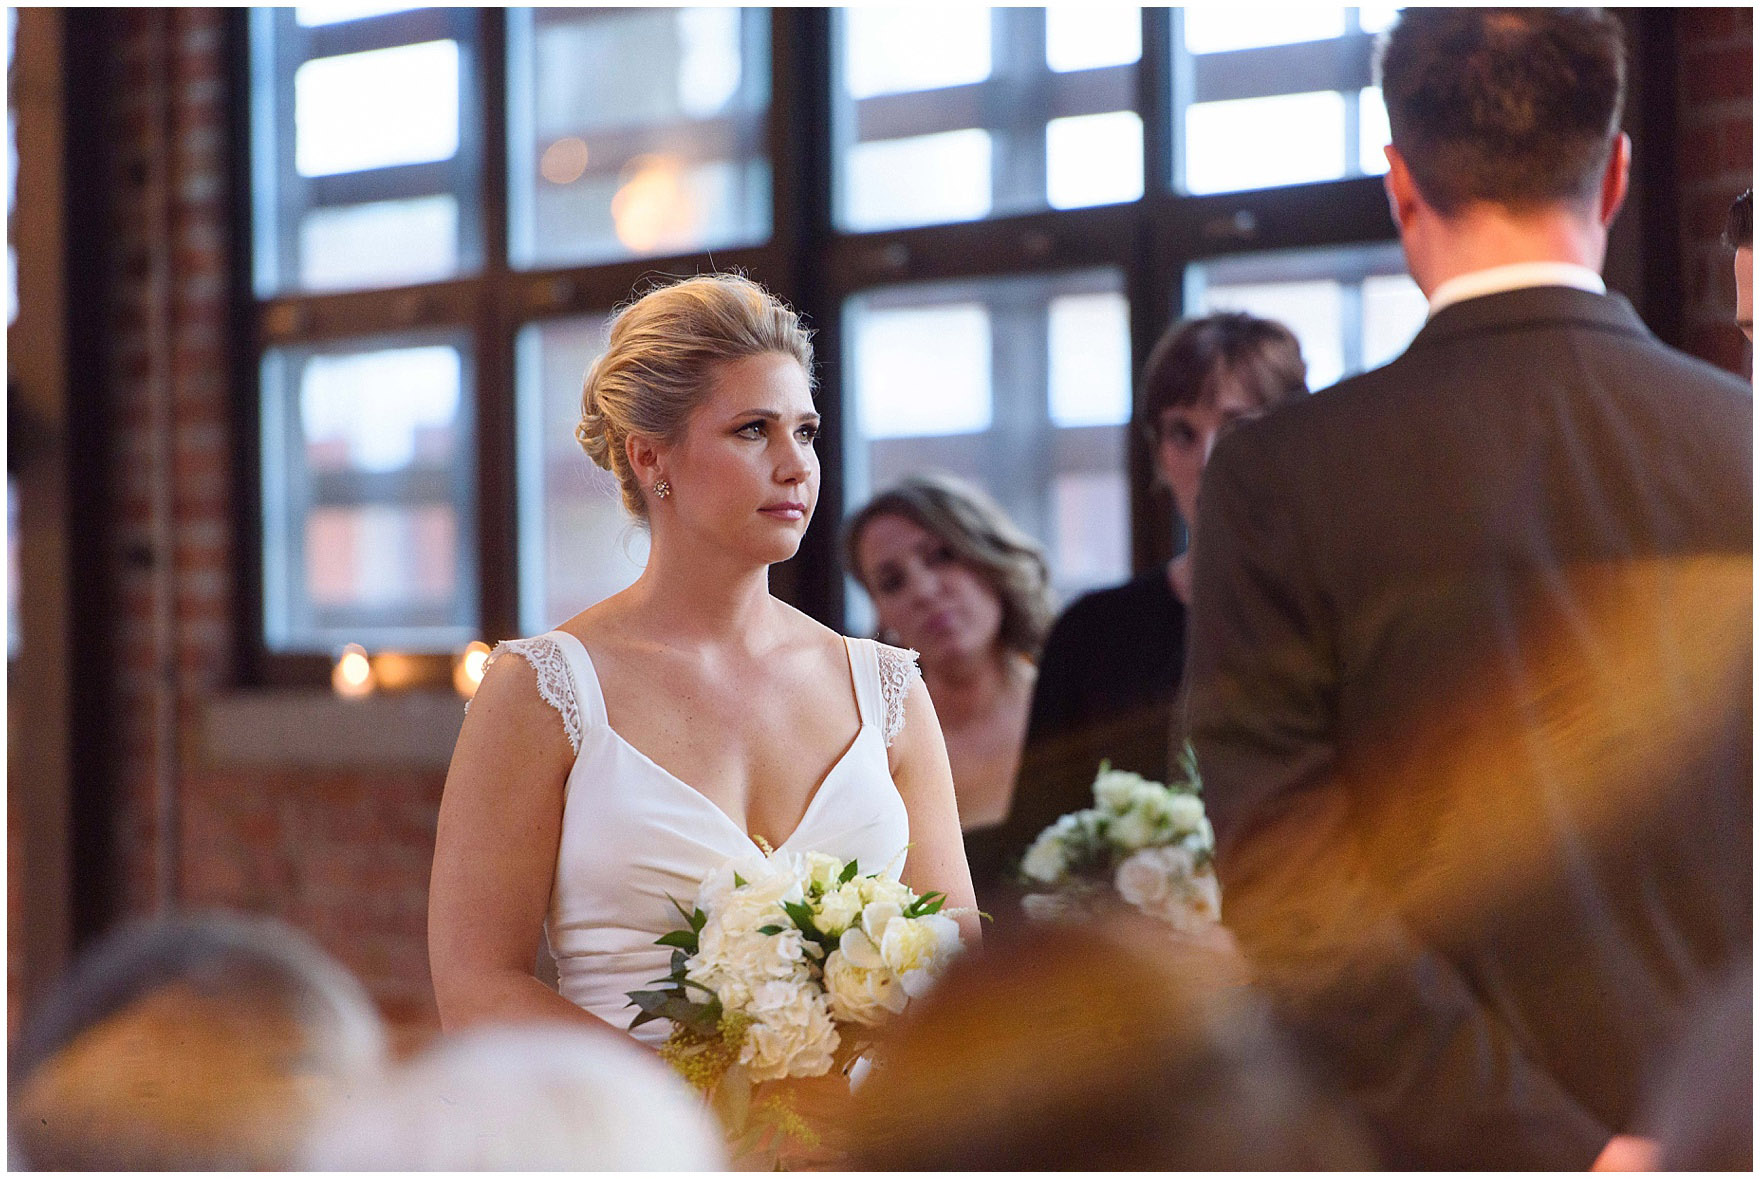 A bride tears up during the ceremony for an Ovation Chicago wedding.